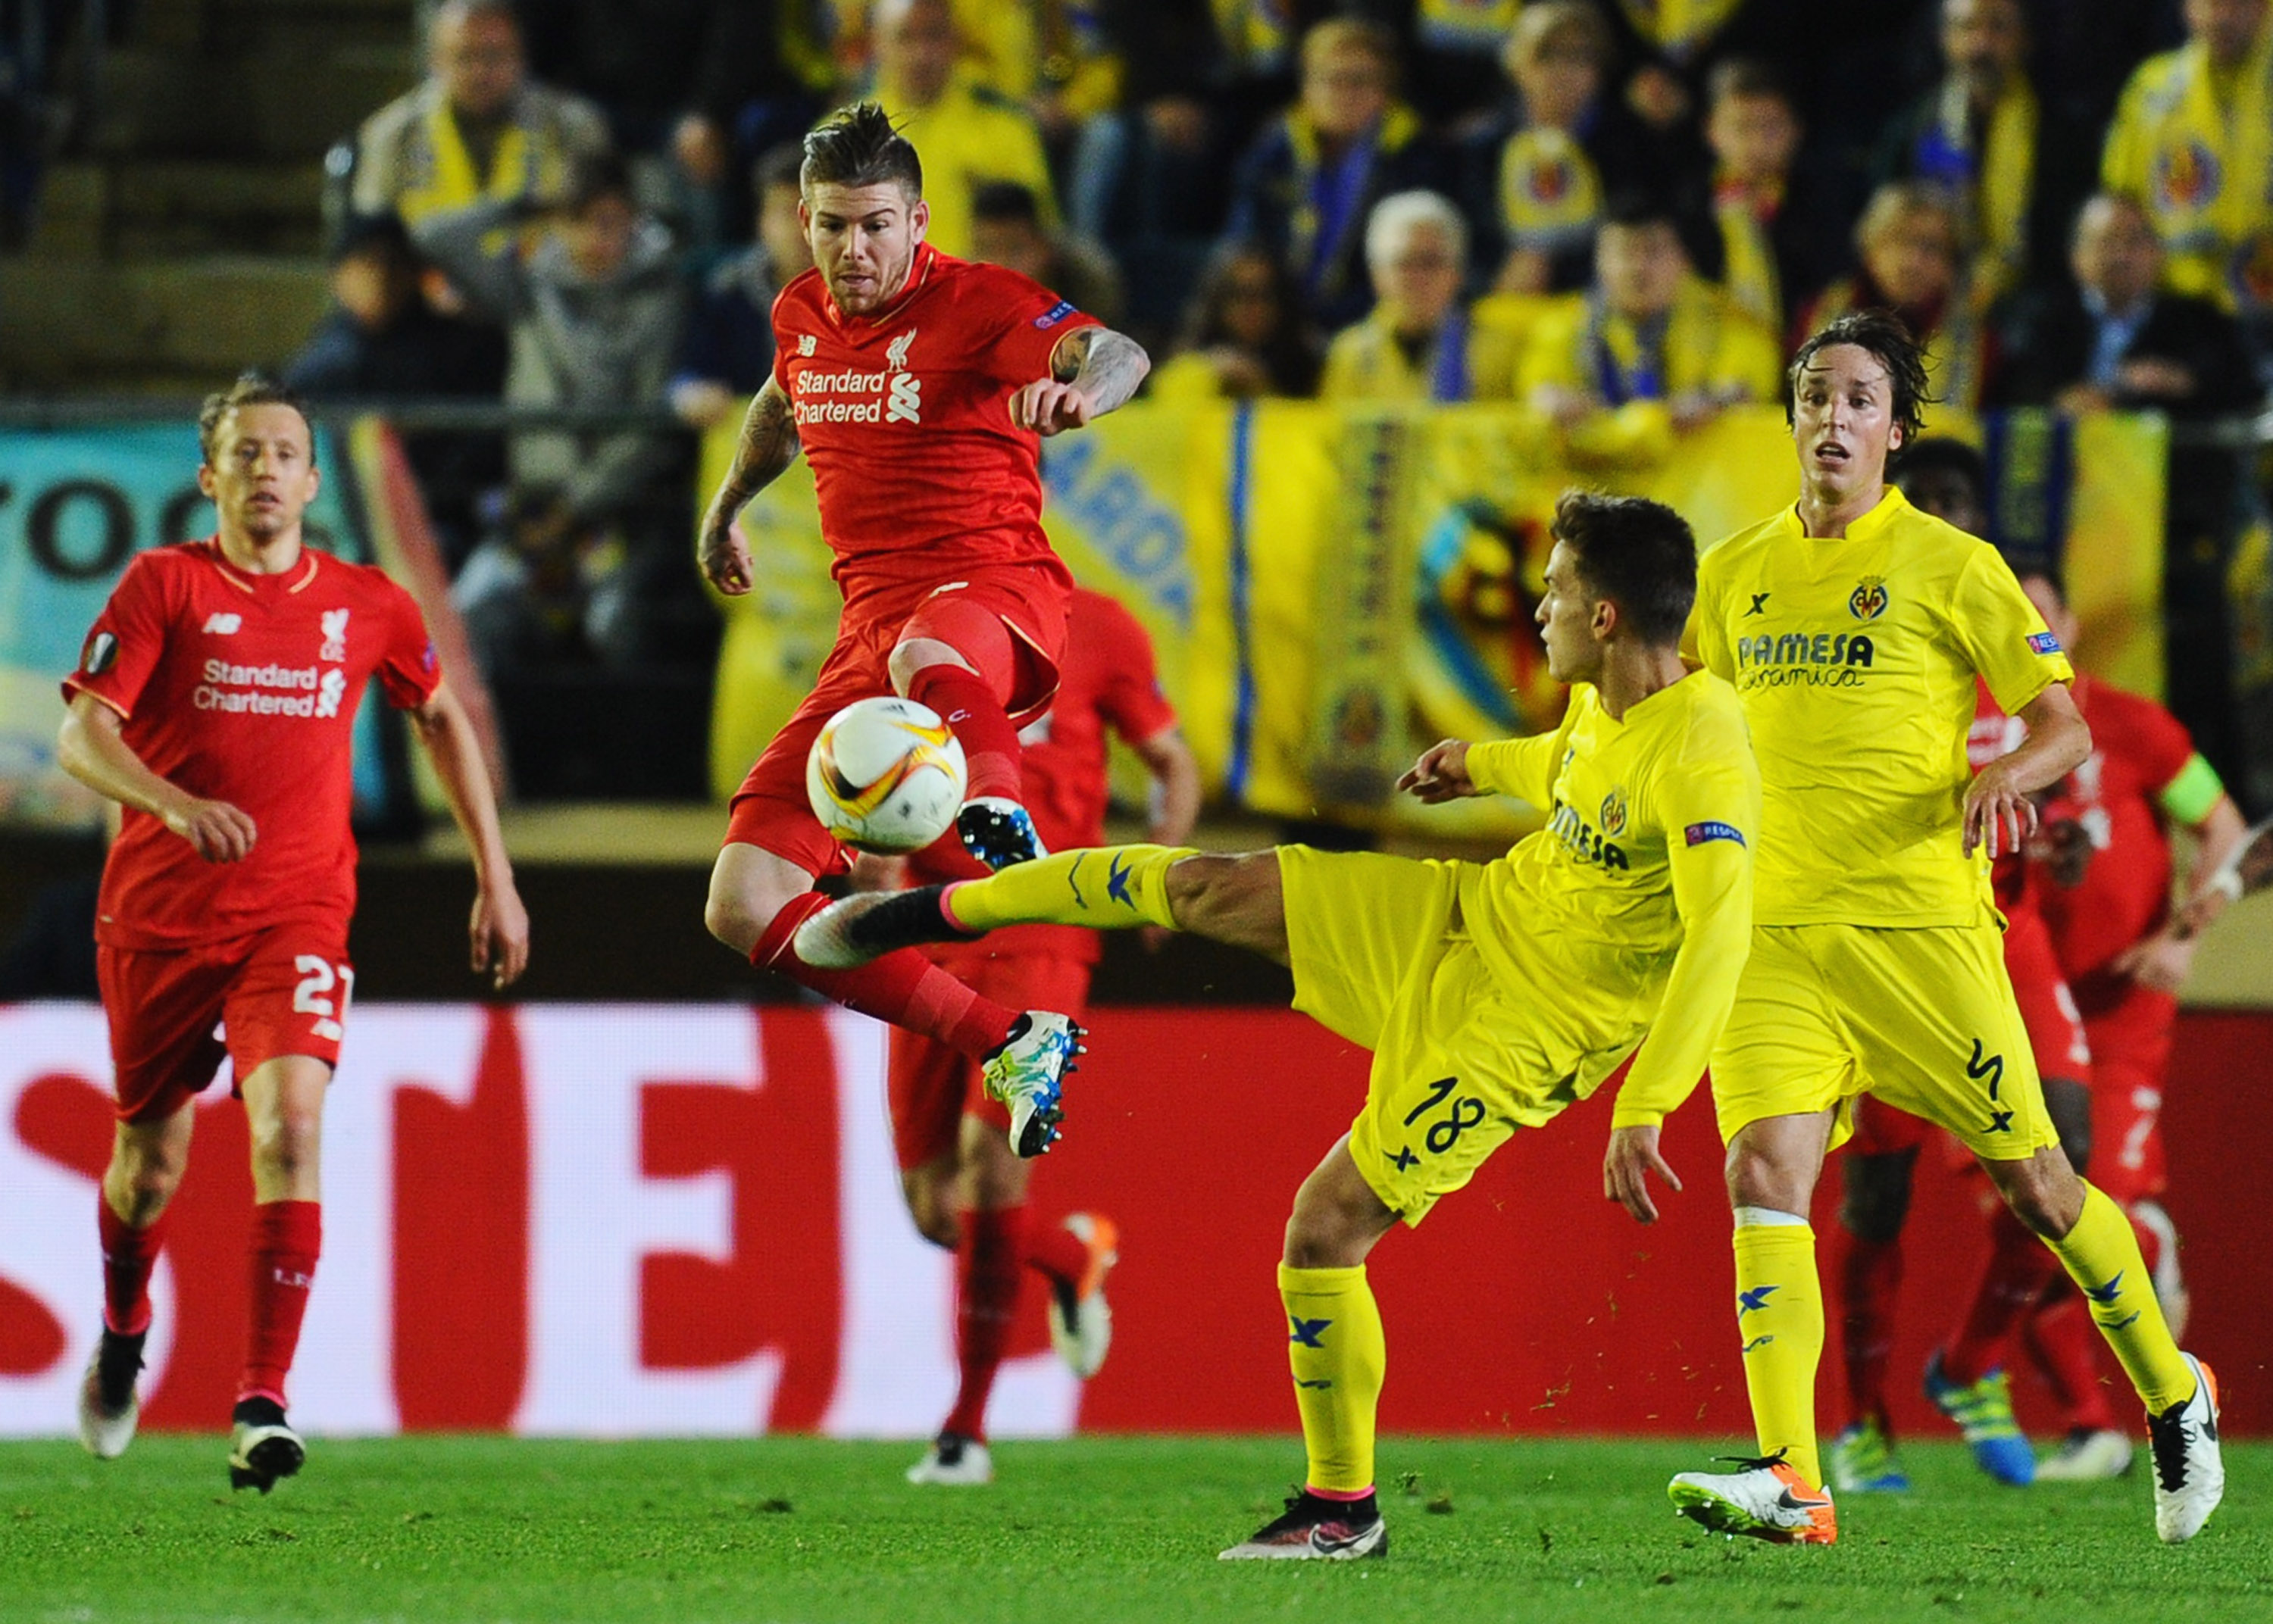 Villarreal CF v Liverpool - UEFA Europa League Semi Final: First Leg